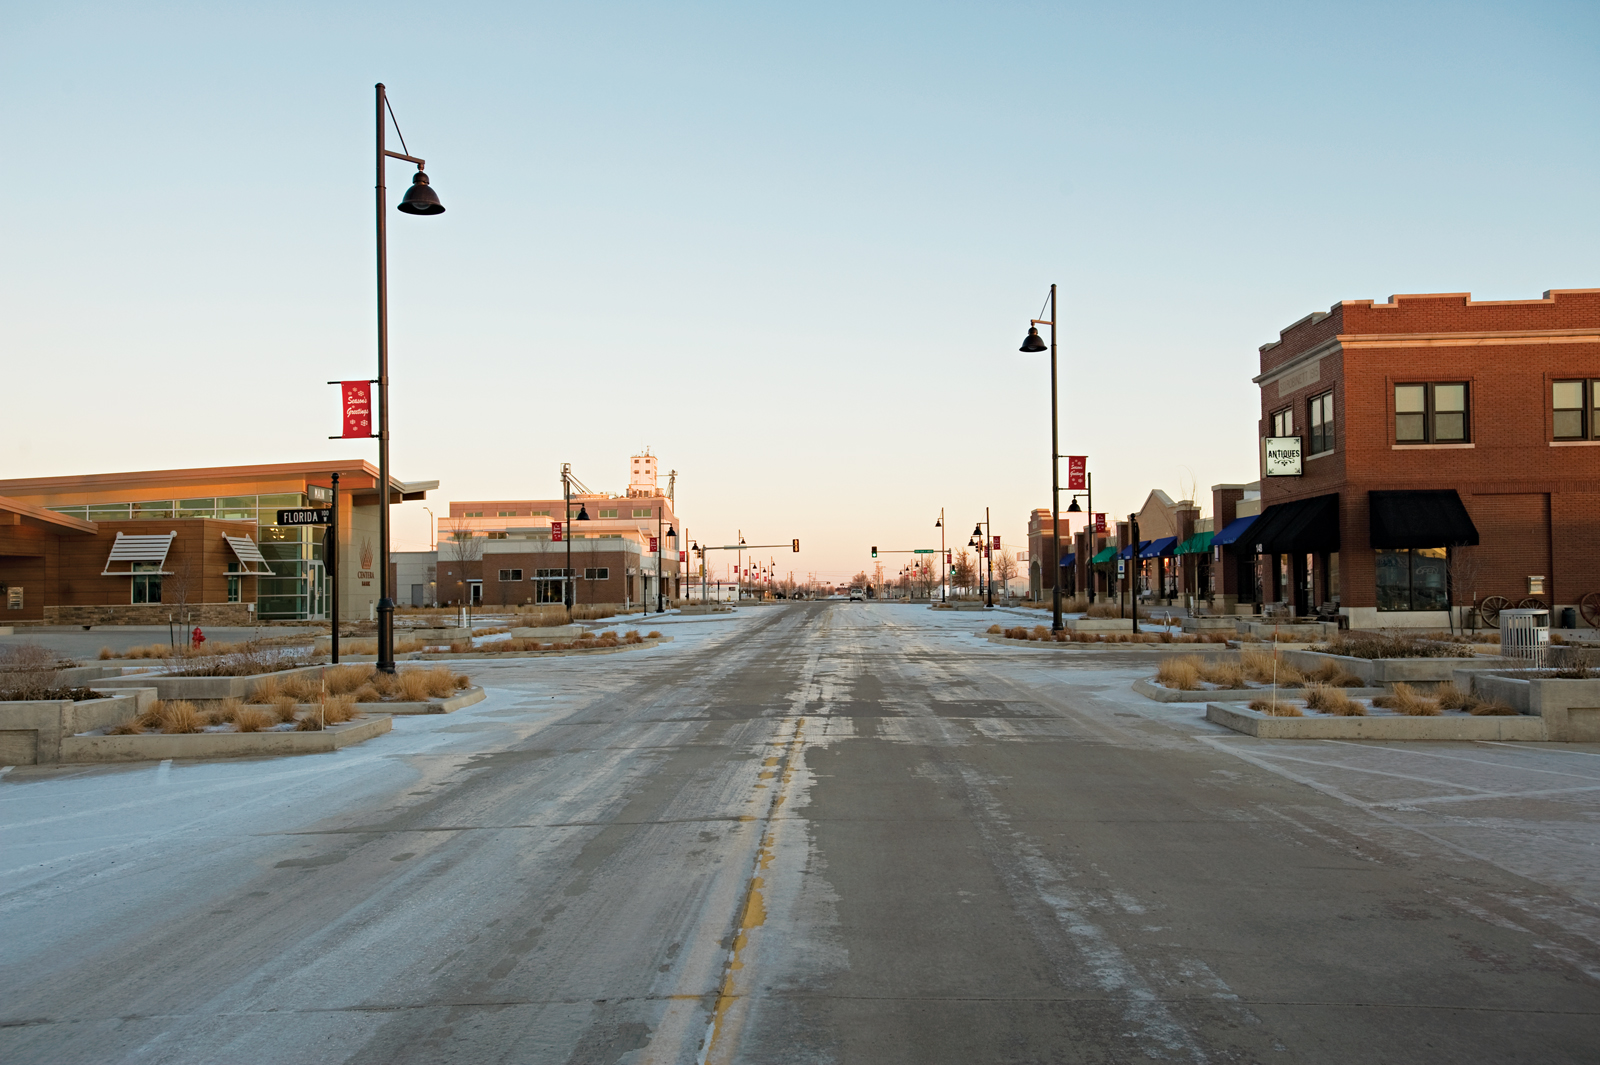 Main Street in Greensburg, Kansas